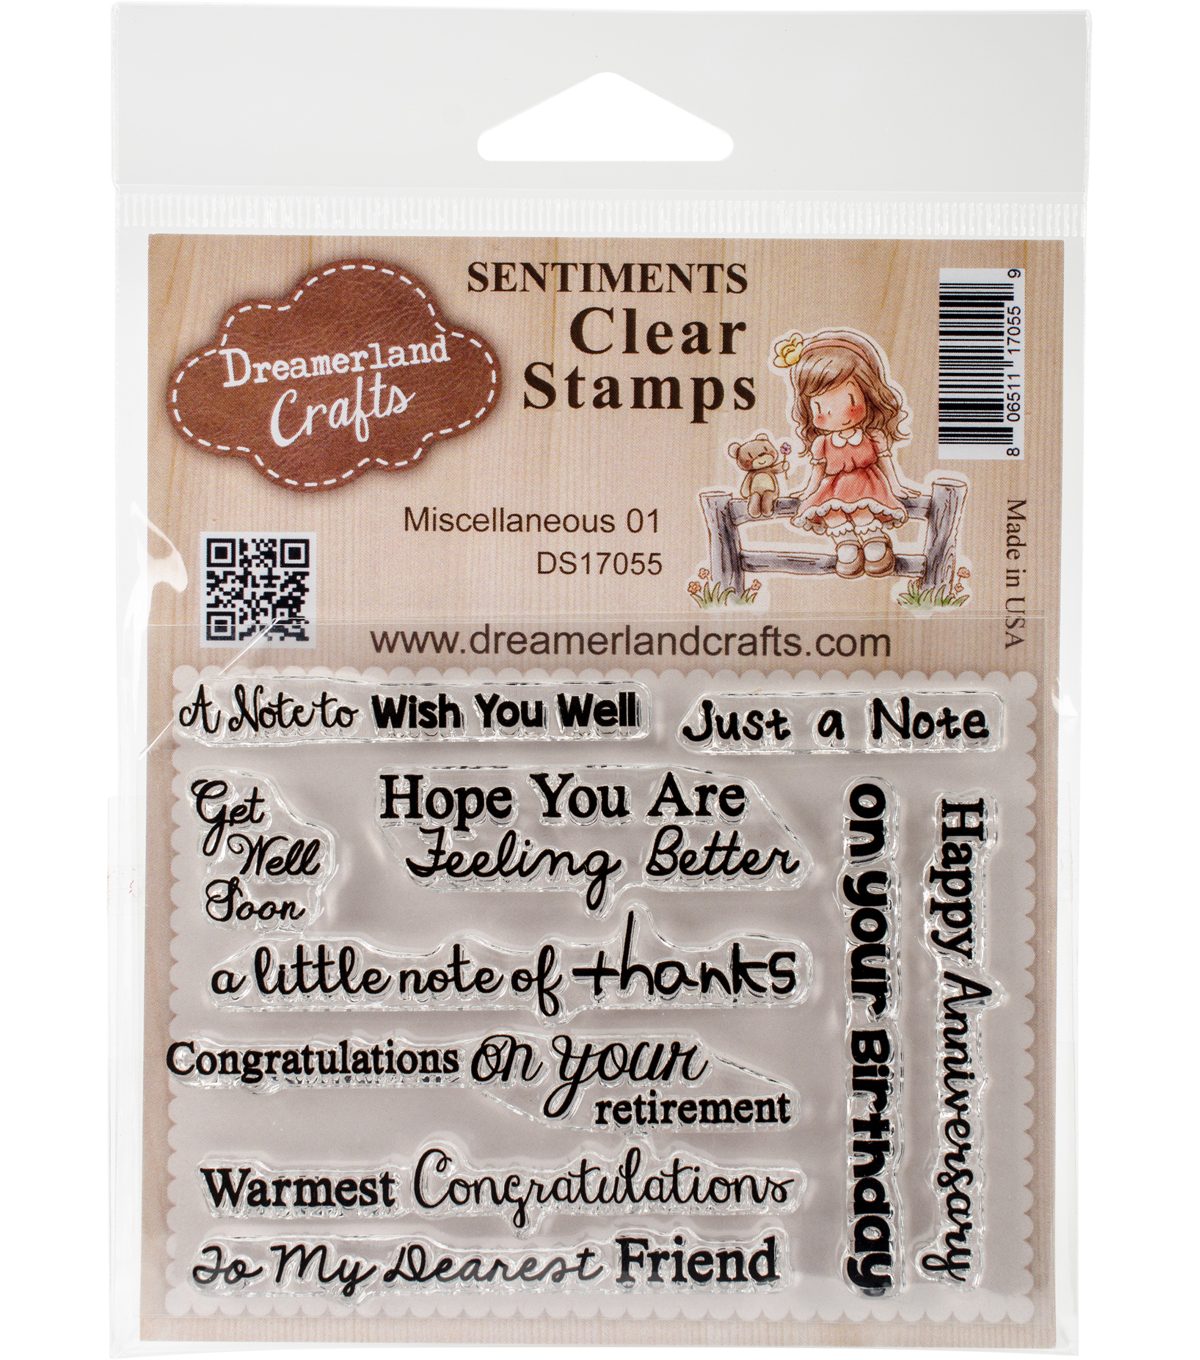 Dreamerland Crafts Clear Stamp Set 3\u0027\u0027x4\u0027\u0027-Miscellaneous 01